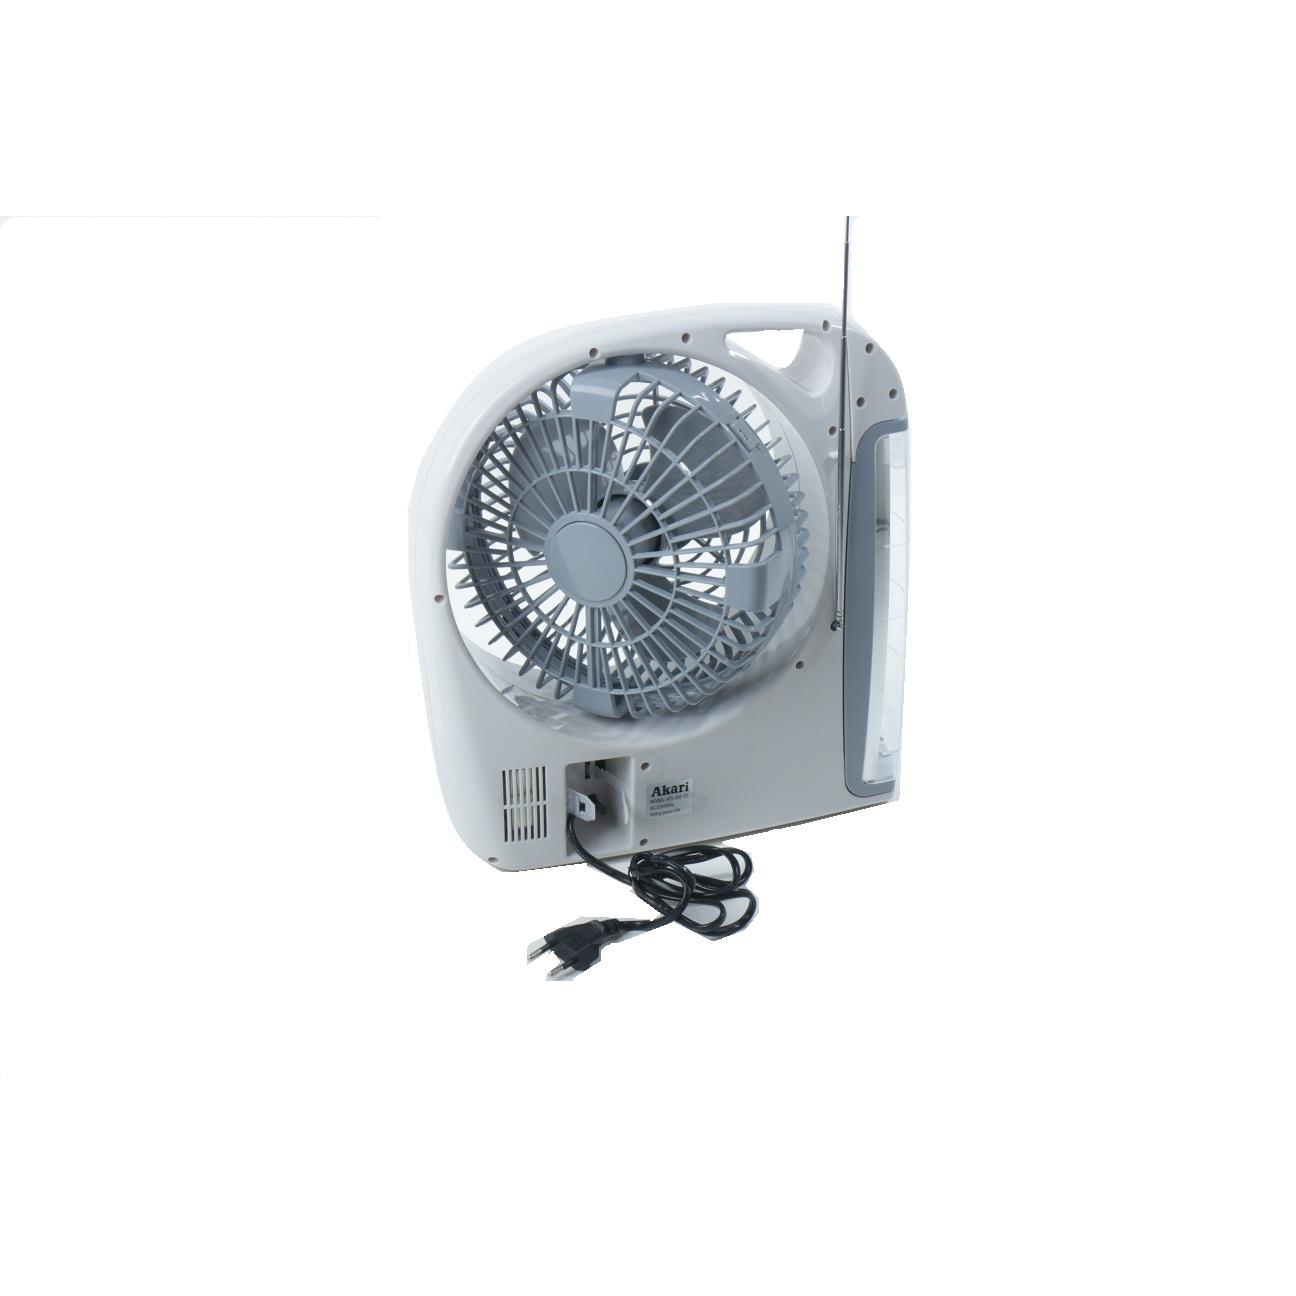 Lampu Emergency Led Dengan Kipas 8 Akari 3 In 1 Portable Fan